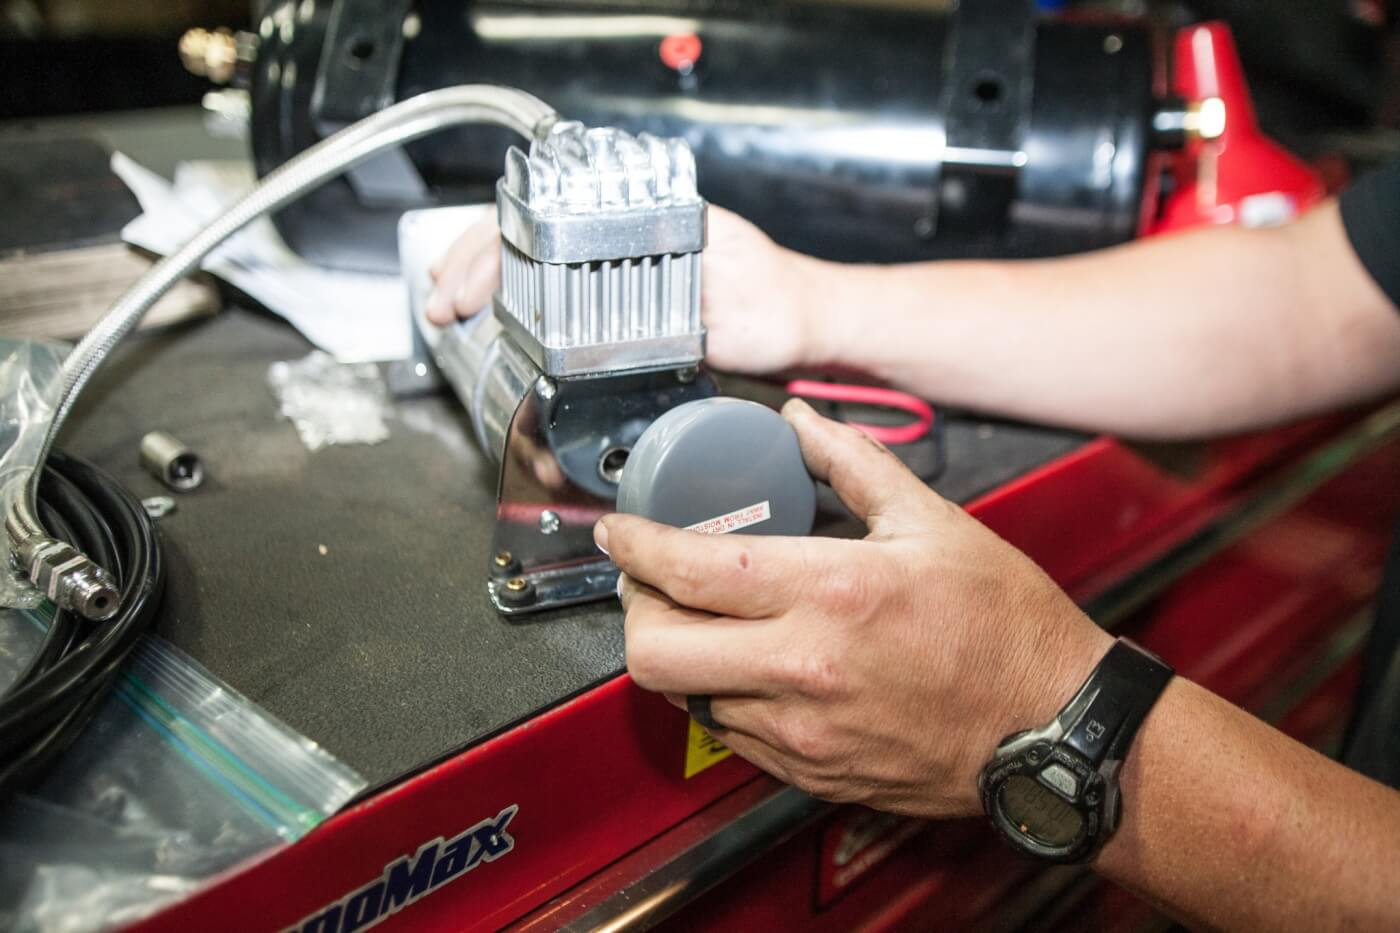 9. Kleinn goes above and beyond with all of its kits, perfecting every little detail. Here's a nice feature: a replaceable air filter for the air compressor. If you run your truck off-road, consider this feature a must-have for keeping the compressor clean and healthy.